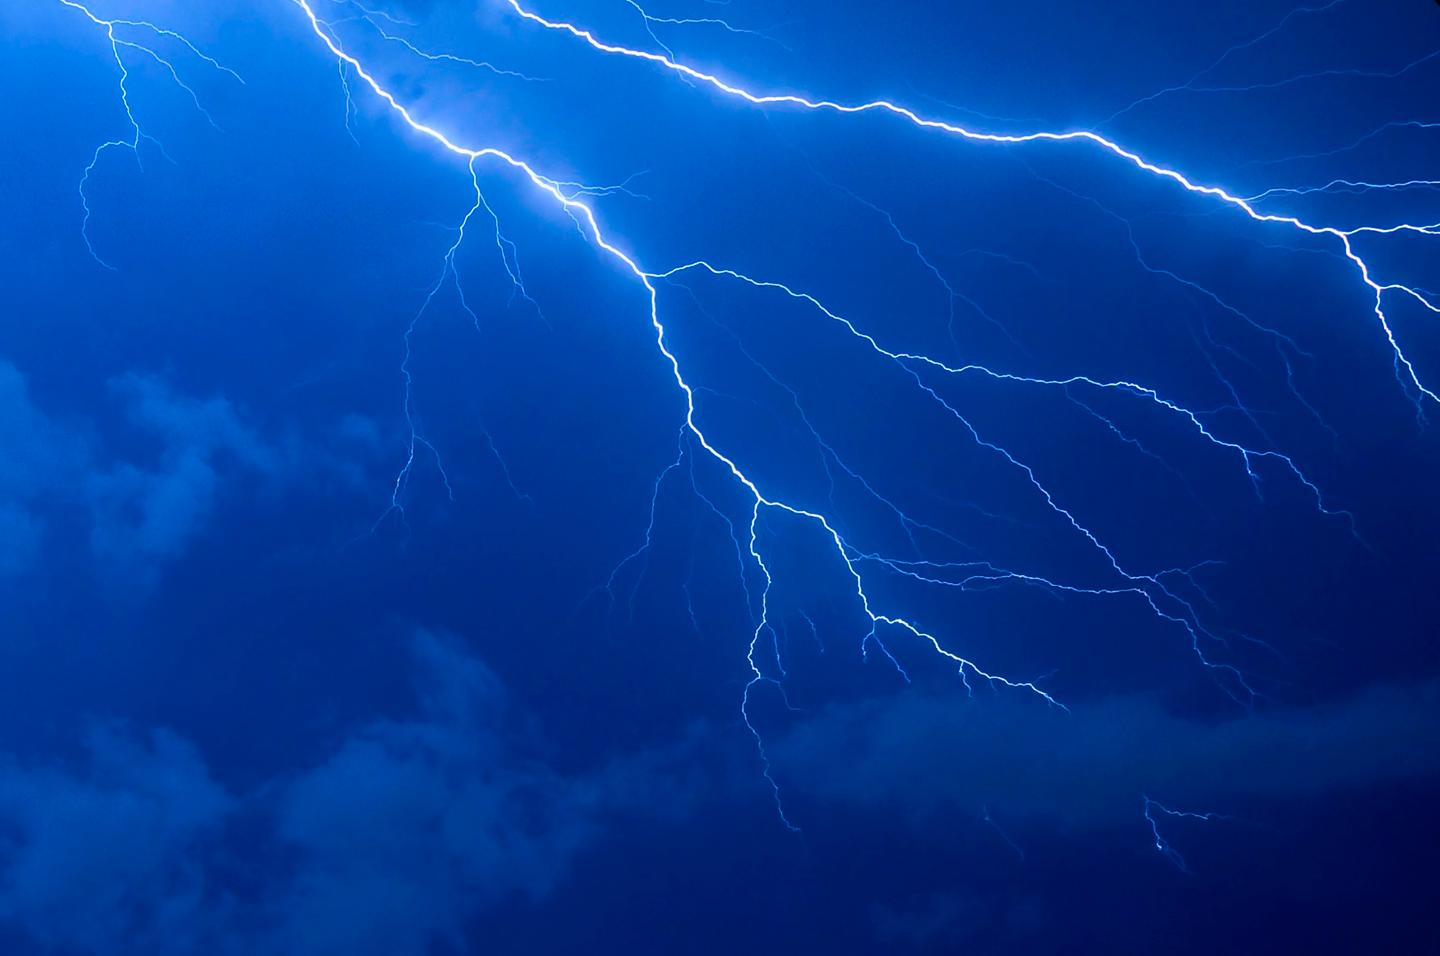 Cosmic rays thrown out by dying stars may have made lightning strikes more common on ancient Earth